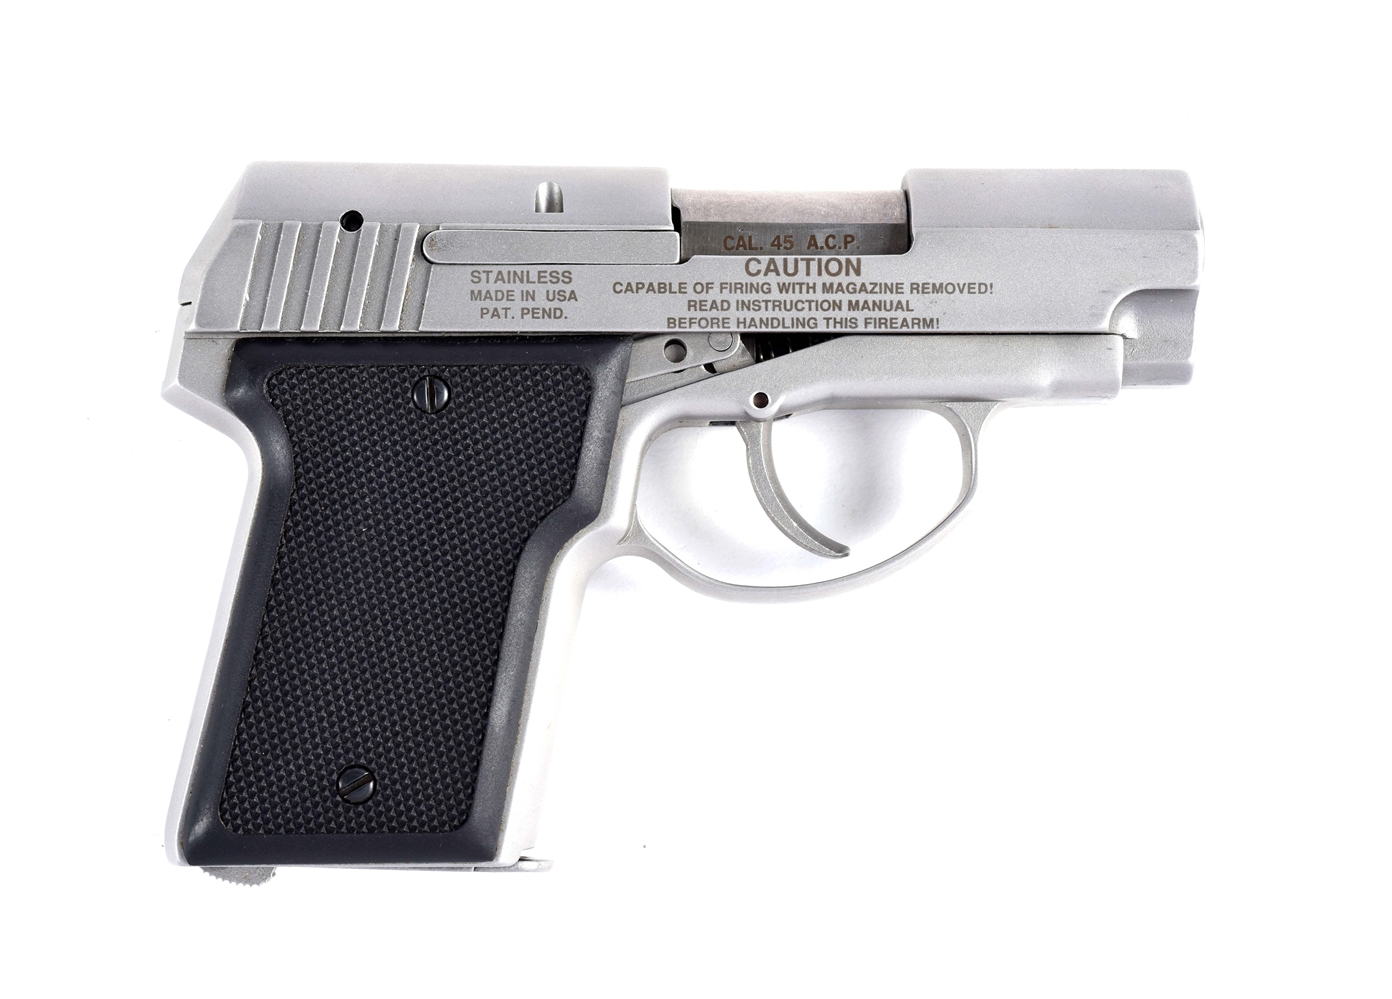 (M) Cased AMT .45 ACP Back-Up Semi-Automatic Pistol.